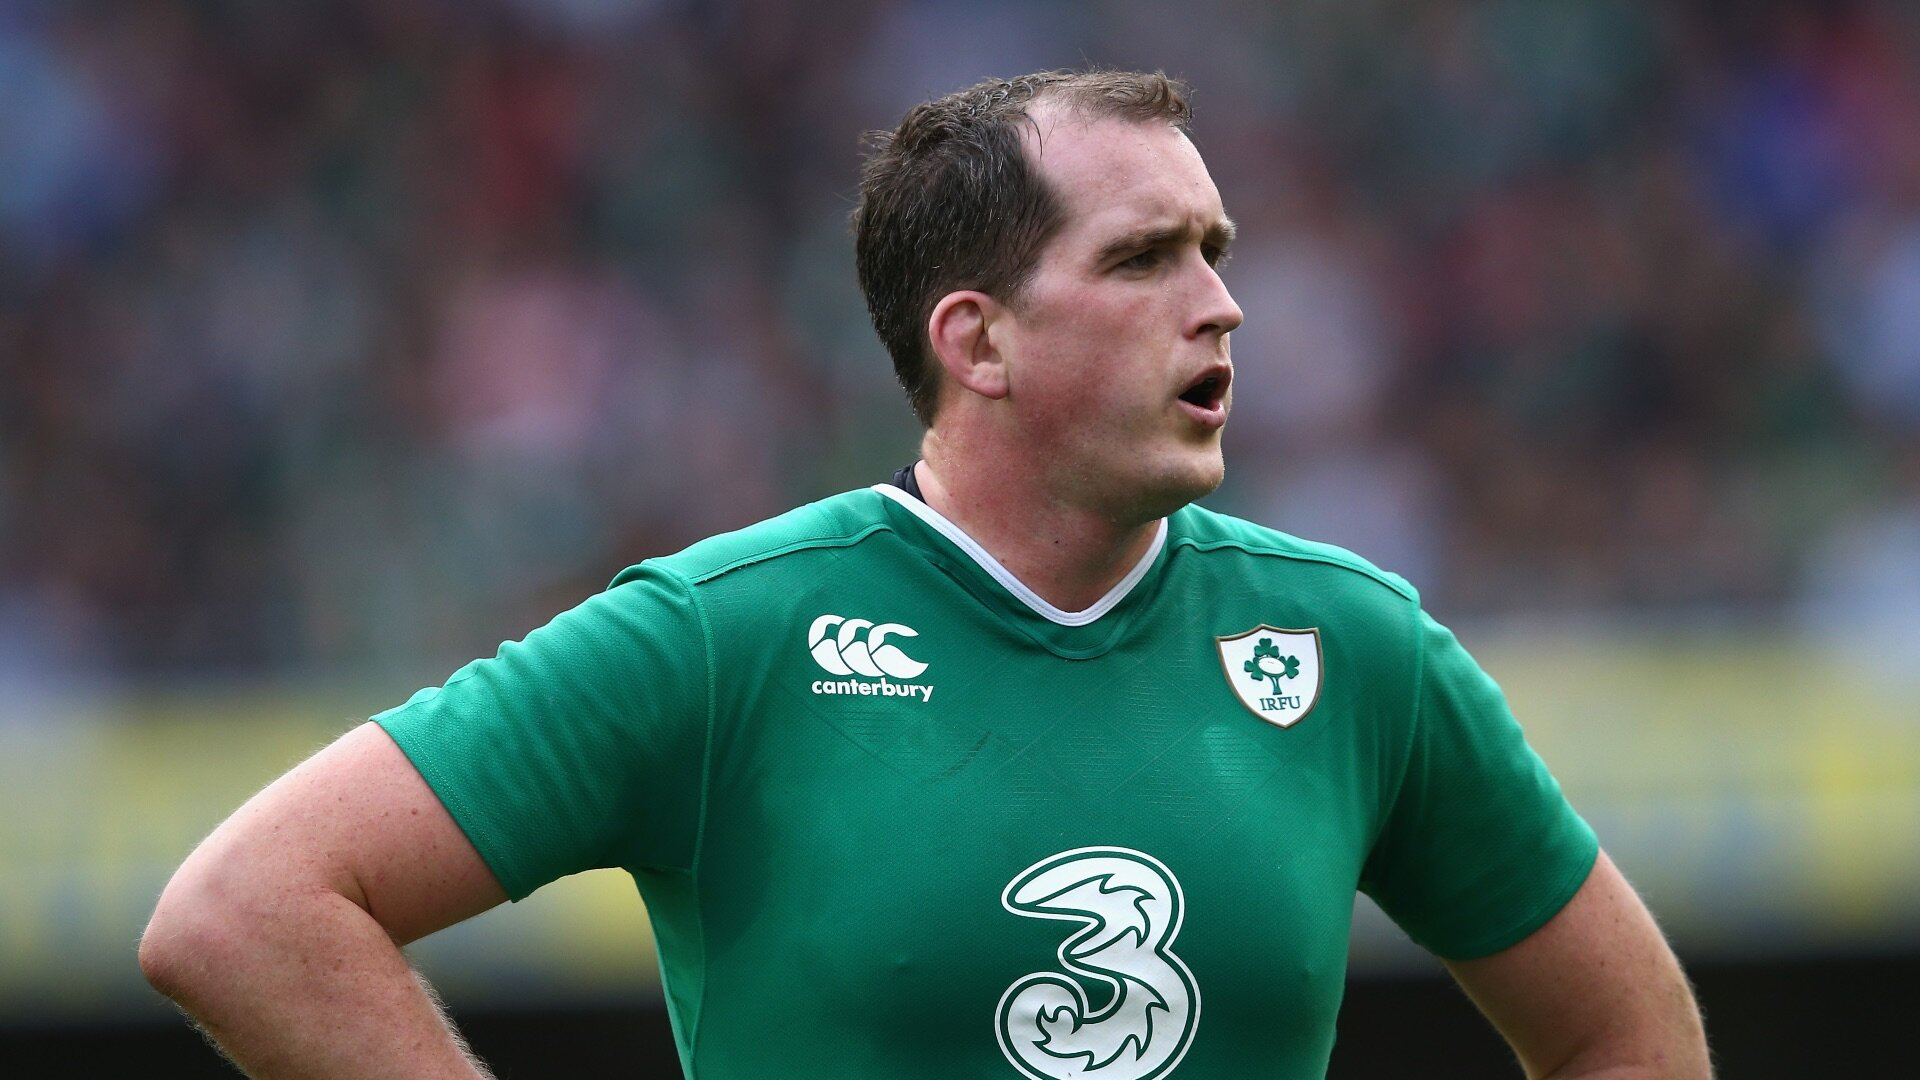 Winners and losers from Andy Farrell's Ireland squad announcement